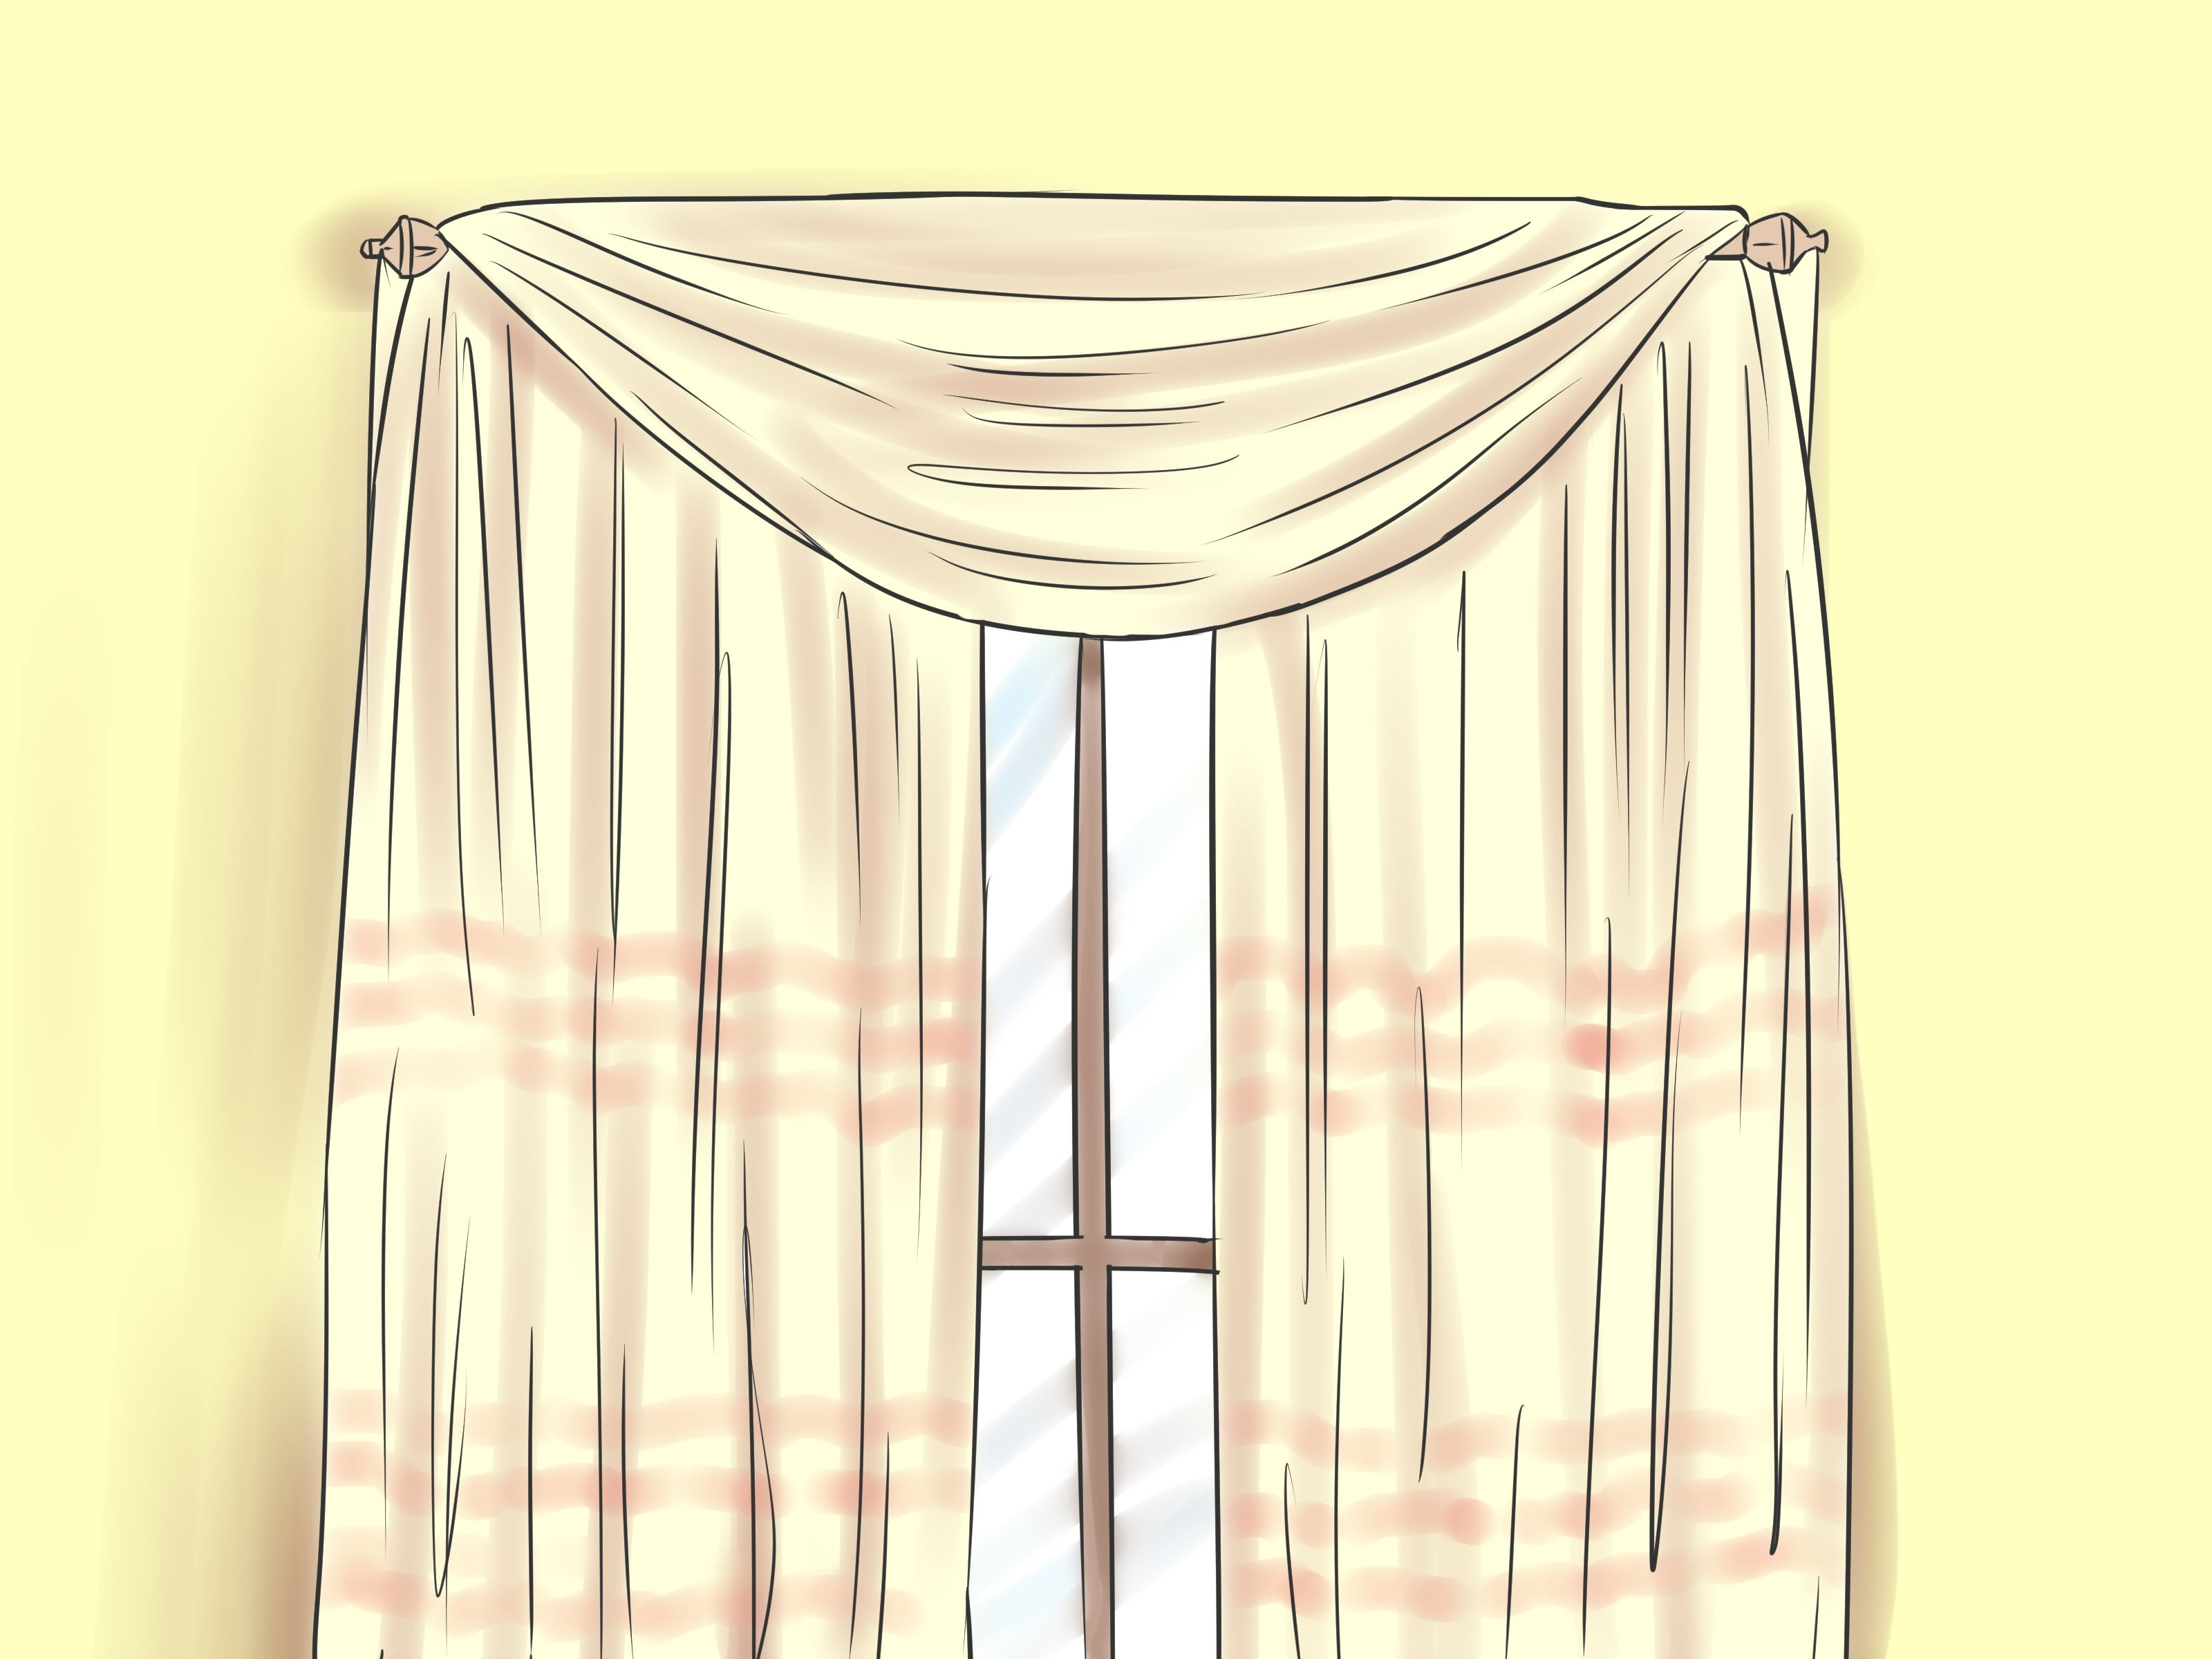 elements overstock shipping voile free valances orders garden on scarf curtain product valance home sheer inch diamond window over